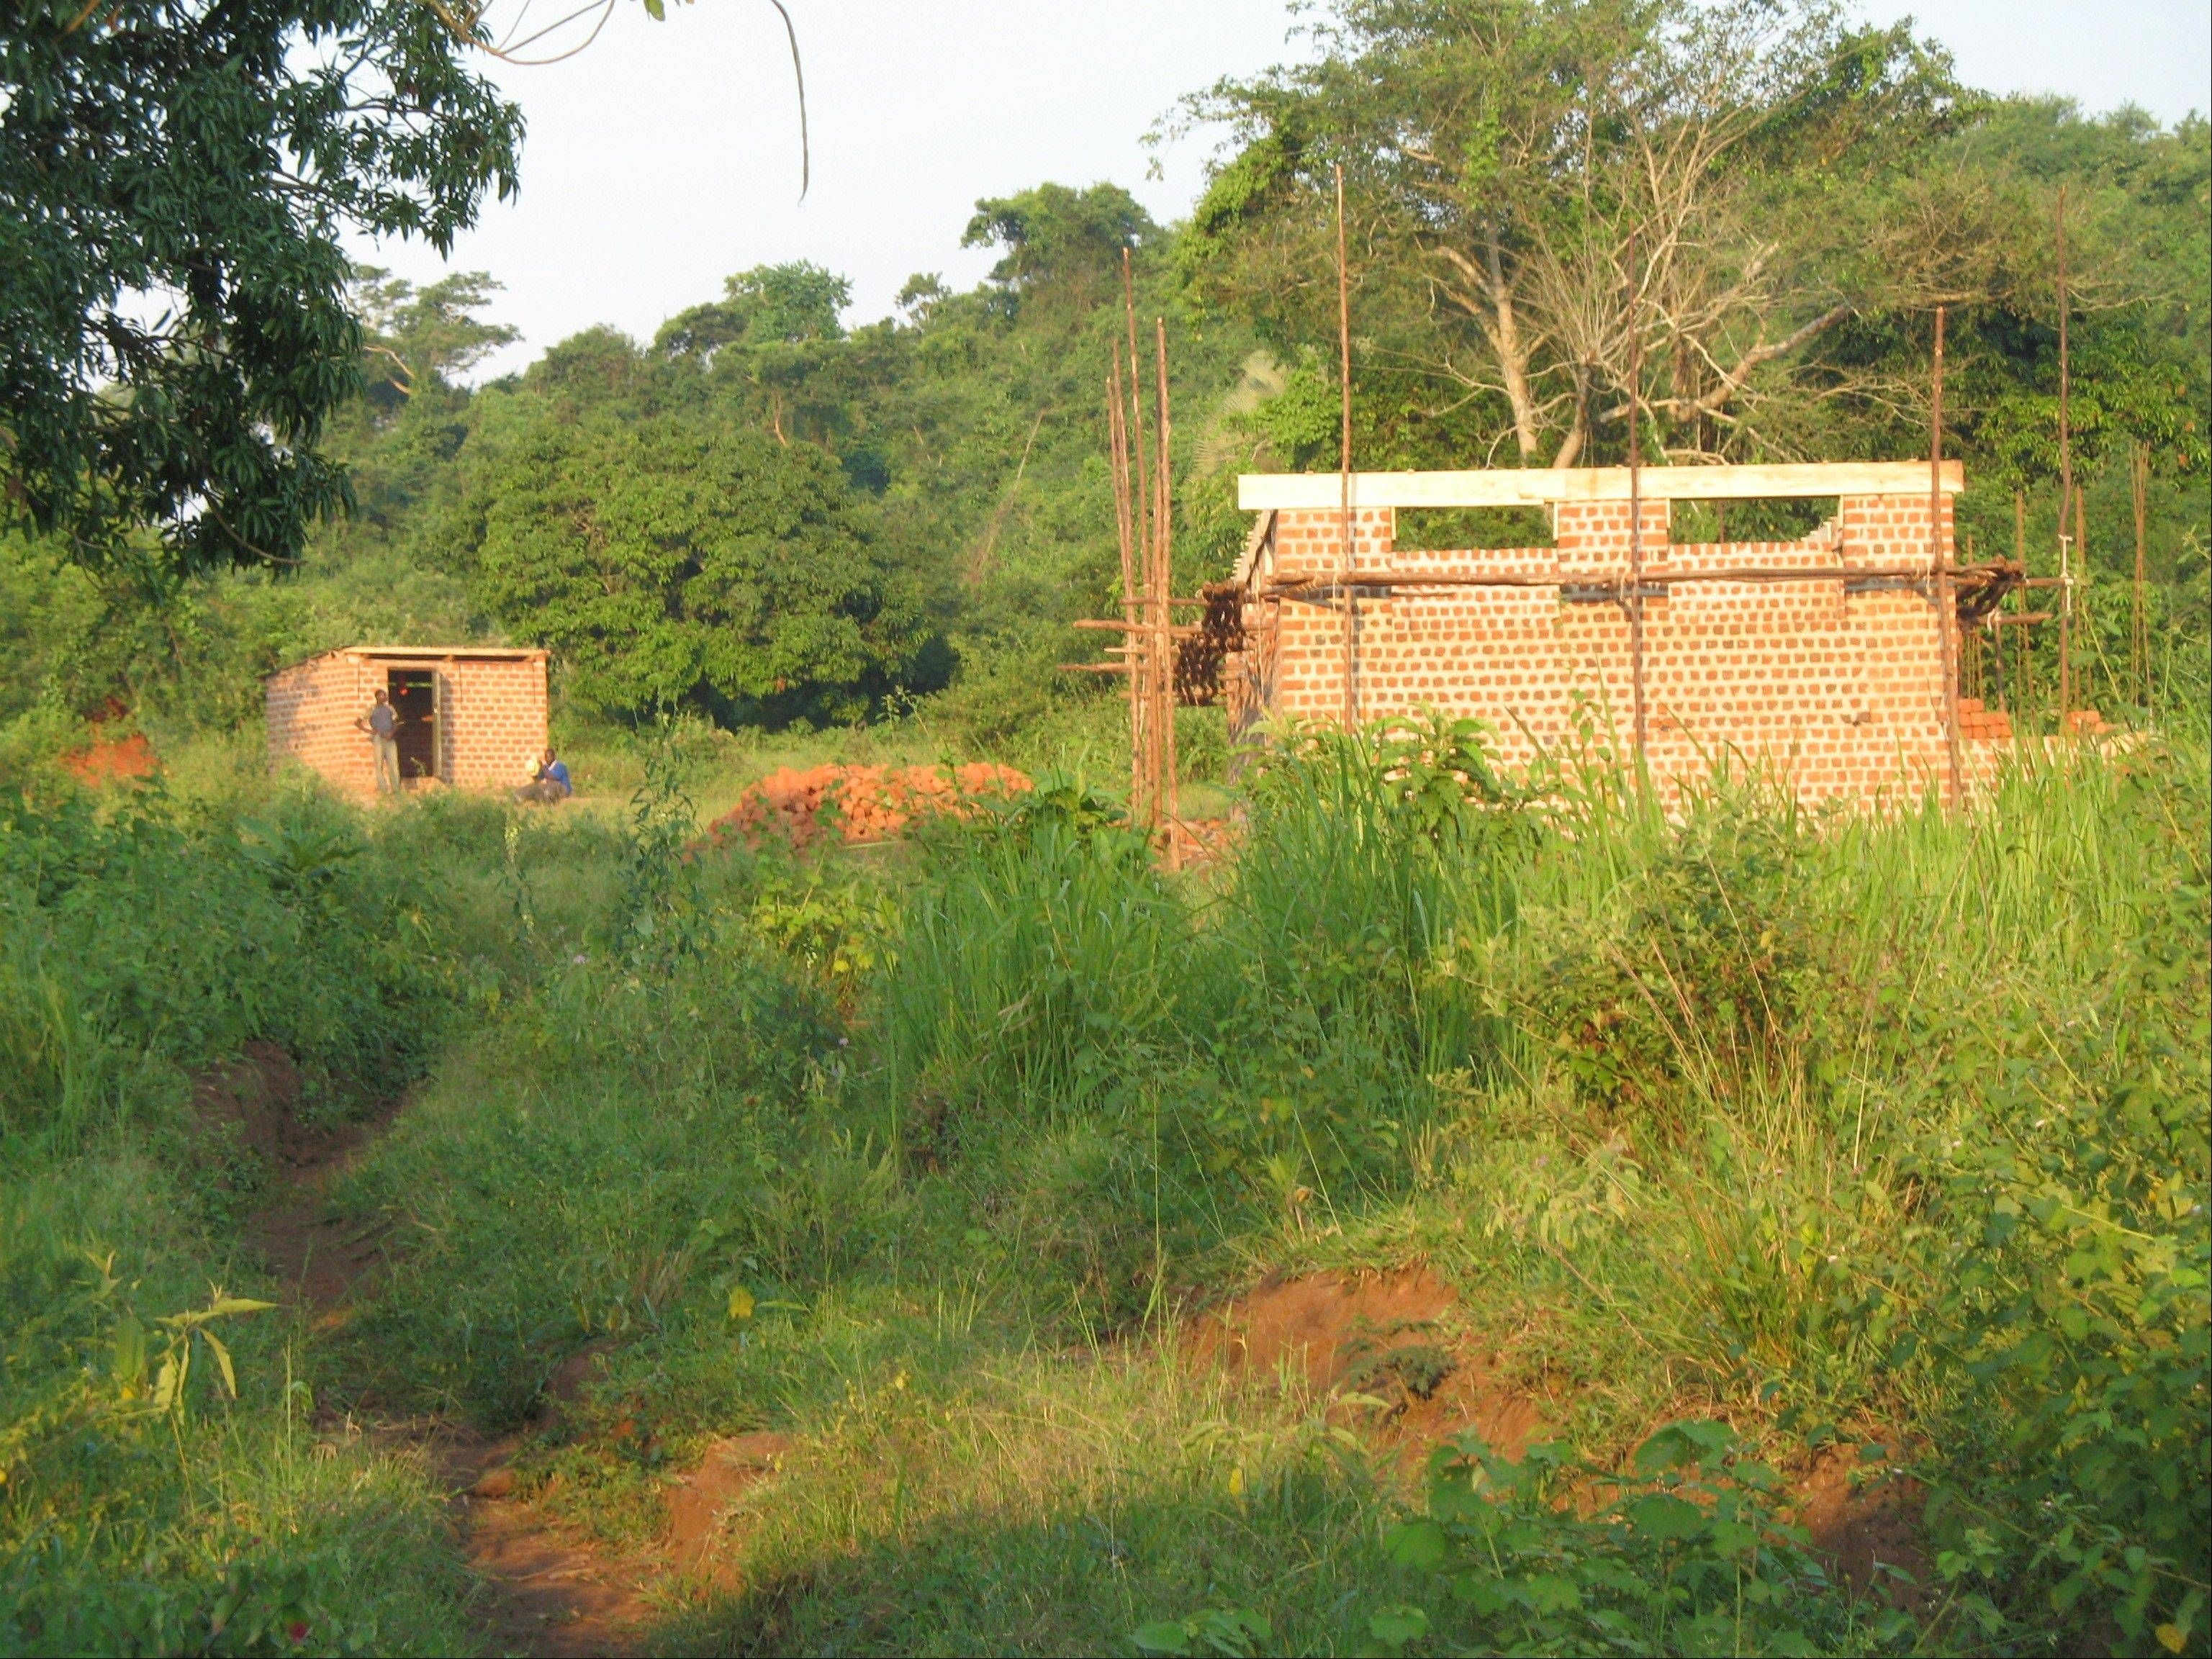 The COVE Alliance campus under construction in Uganda. The project took seven years to complete.